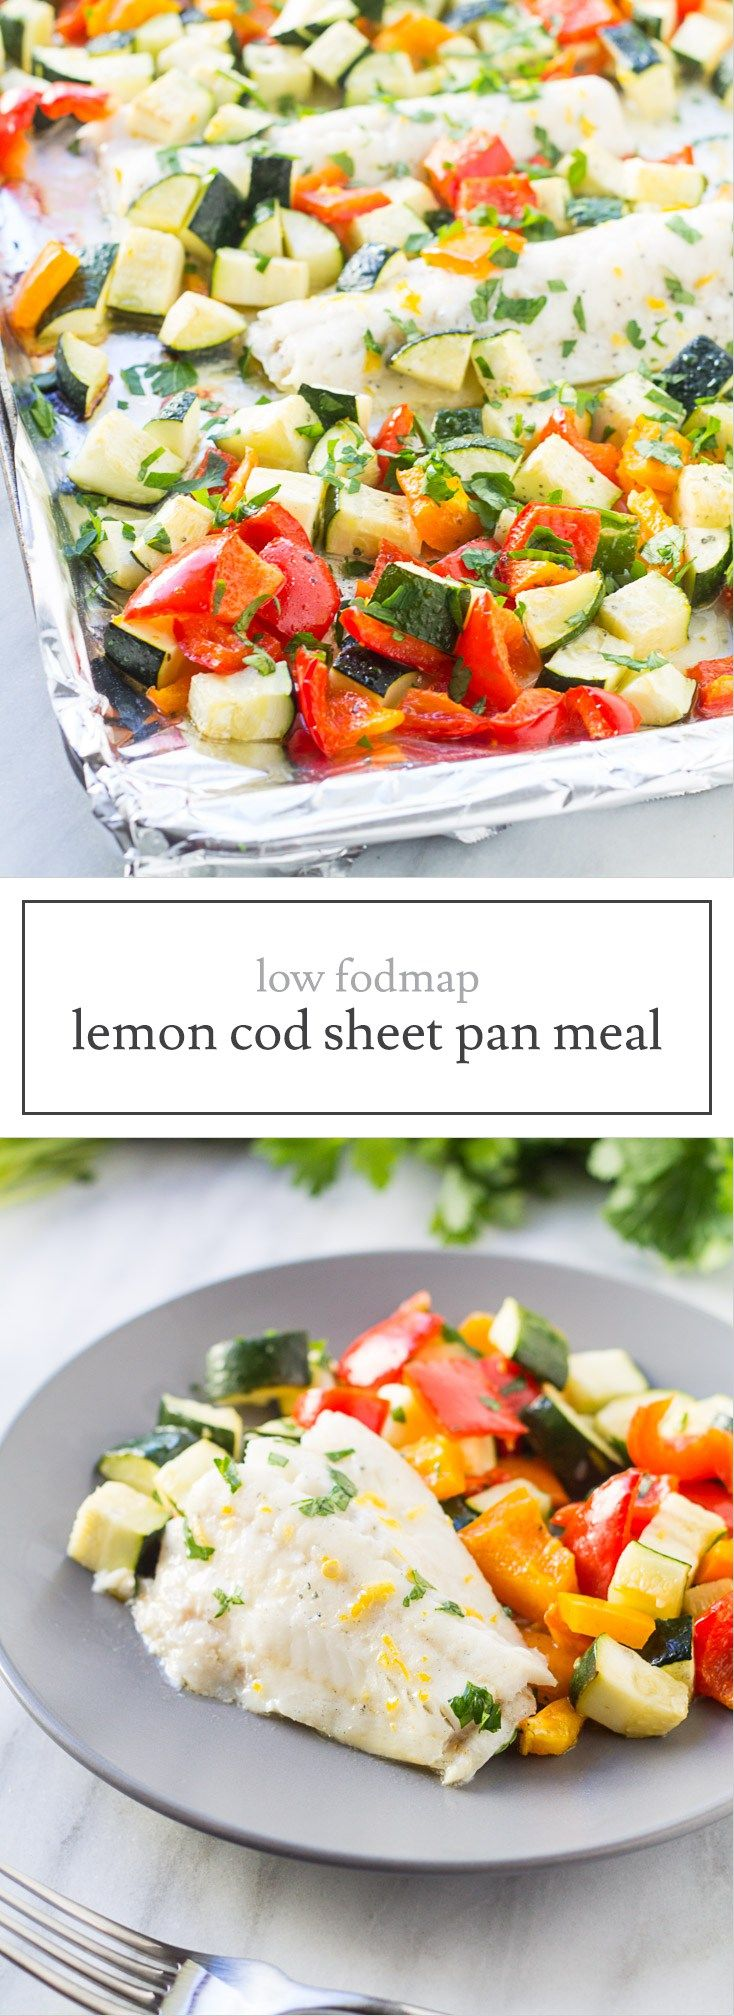 This Whole30-compliant Low Fodmap Baked Lemon Cod Sheet Pan Meal recipe is filled with roasted Mediterranean veggies and fresh lemon. Low FODMAP recipe